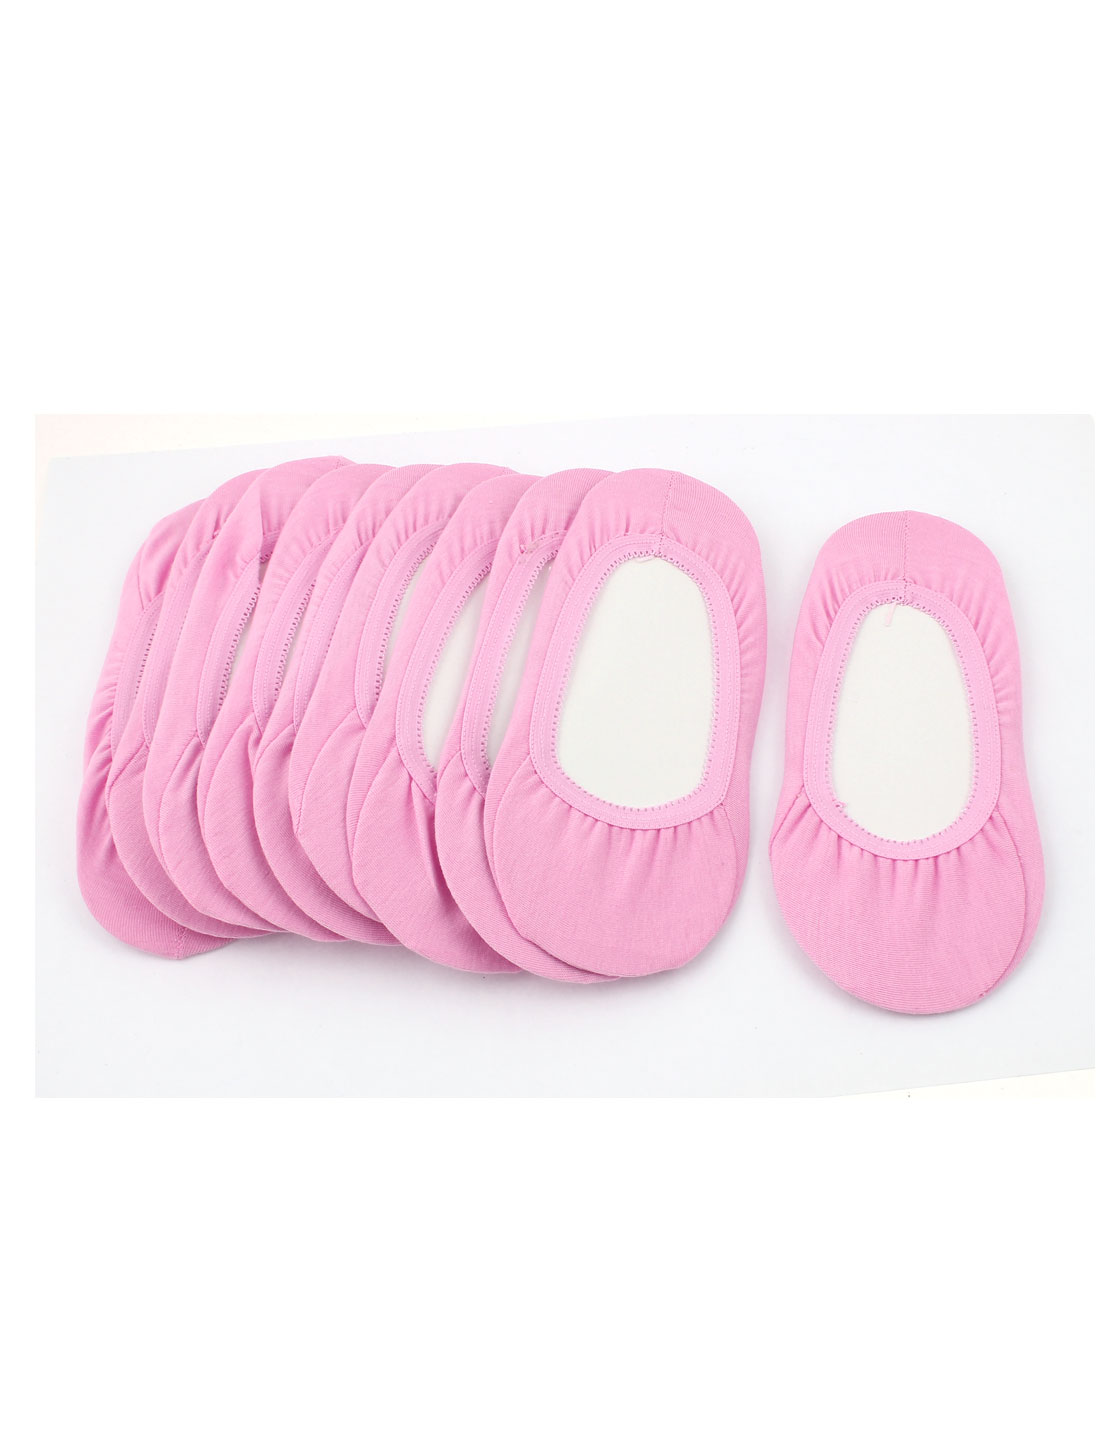 10Pairs Summer Pink Cotton Blends Elastic Slipper Heels Footsie Invisible Boat Socks for Women